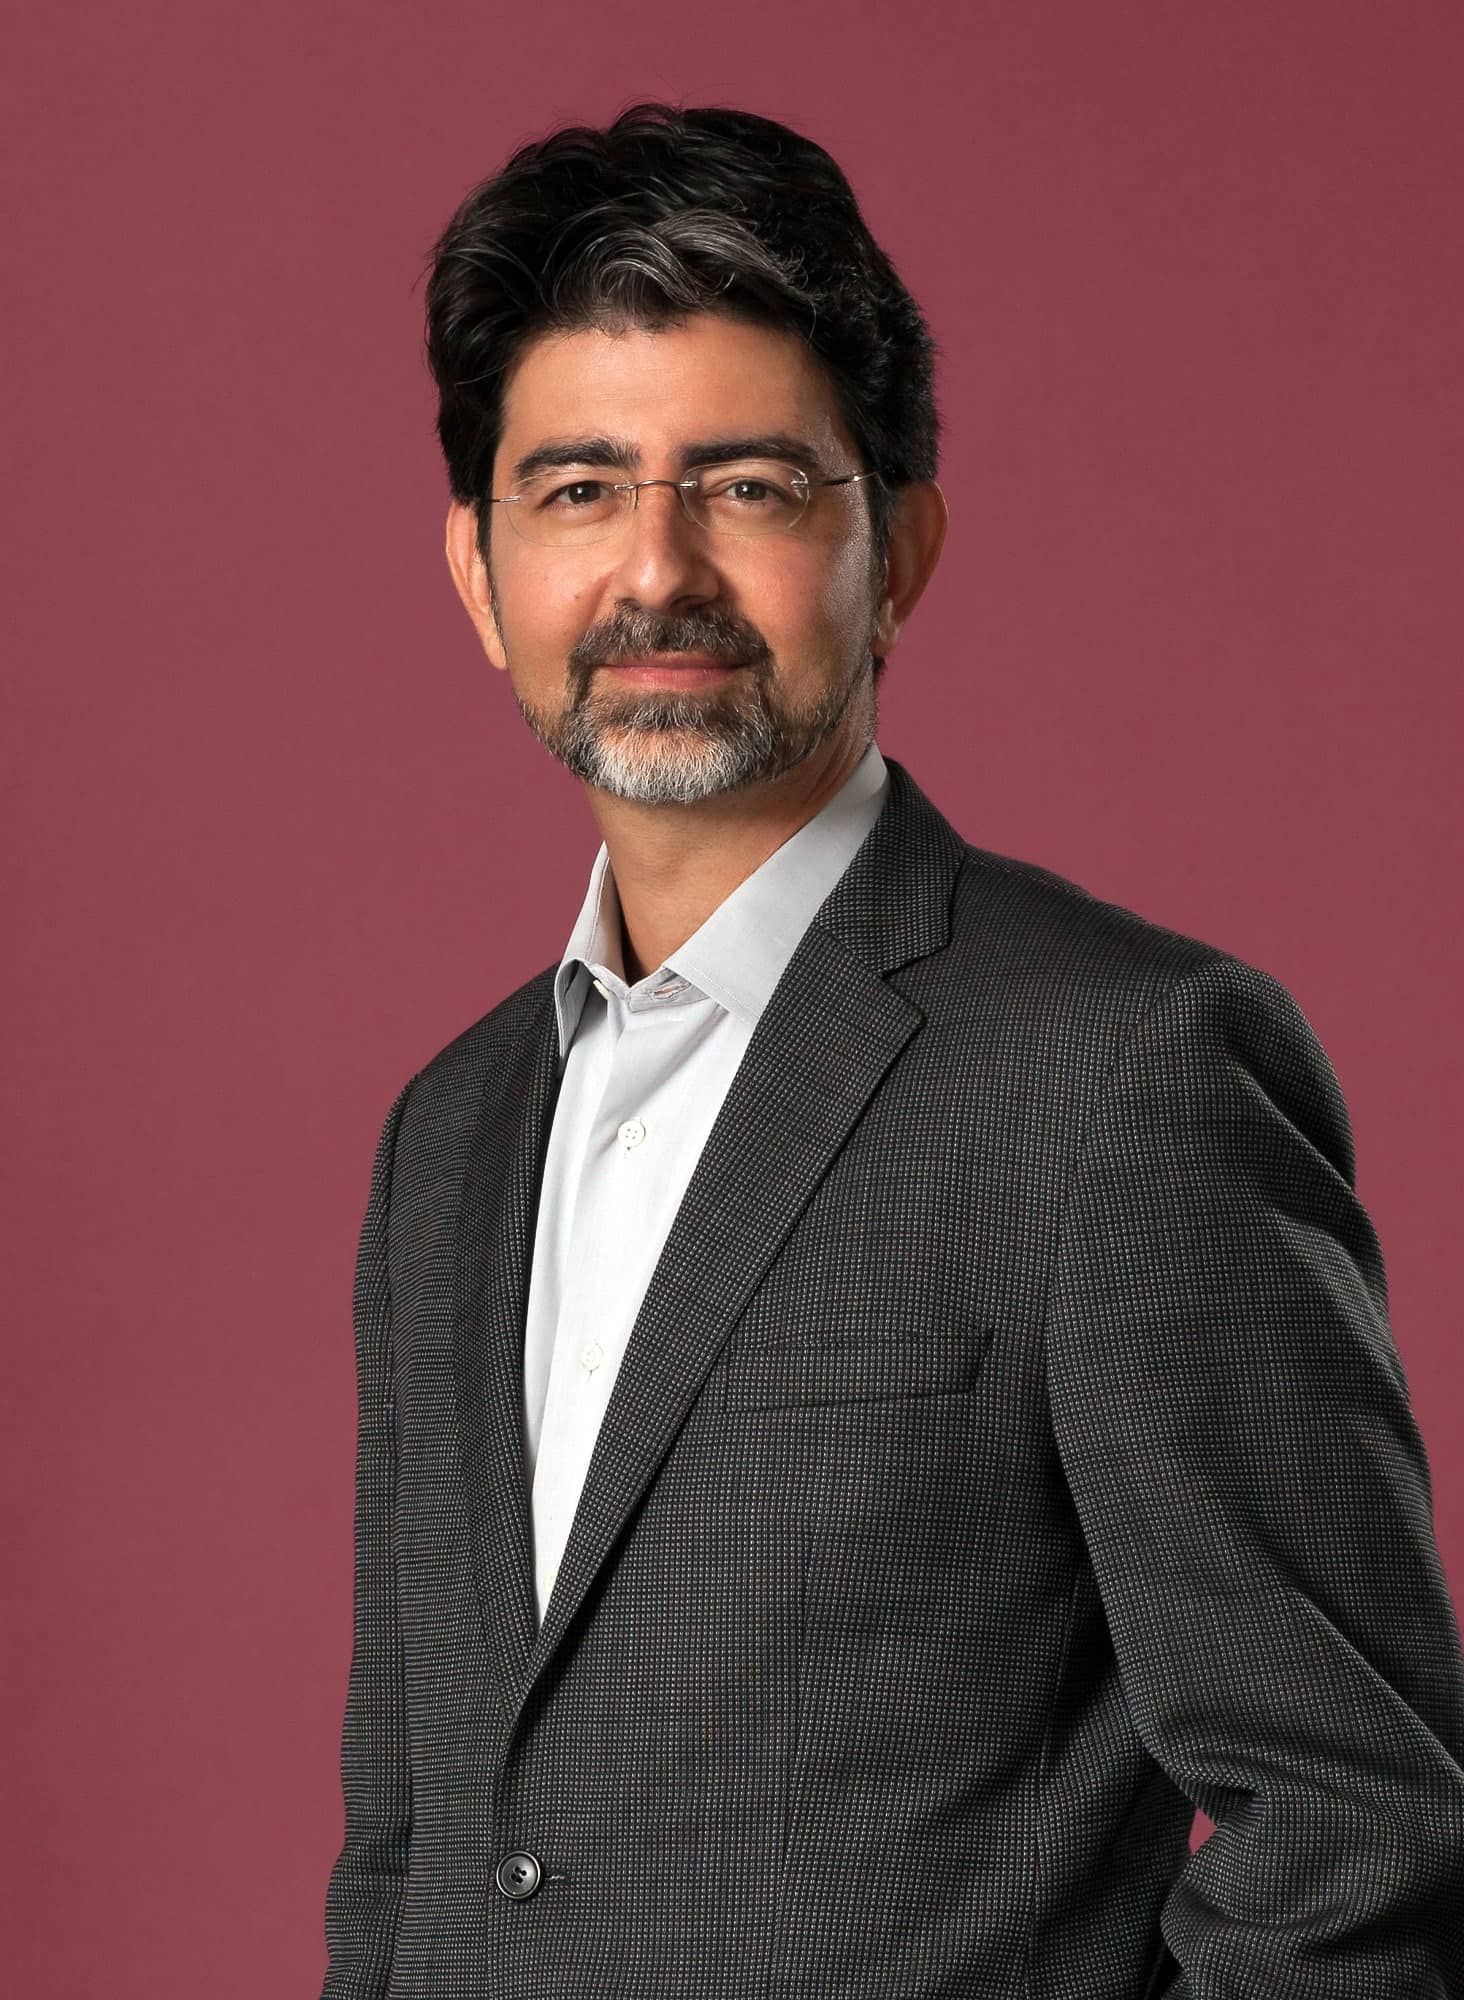 Pierre Morad Omidyar Founder Of eBay